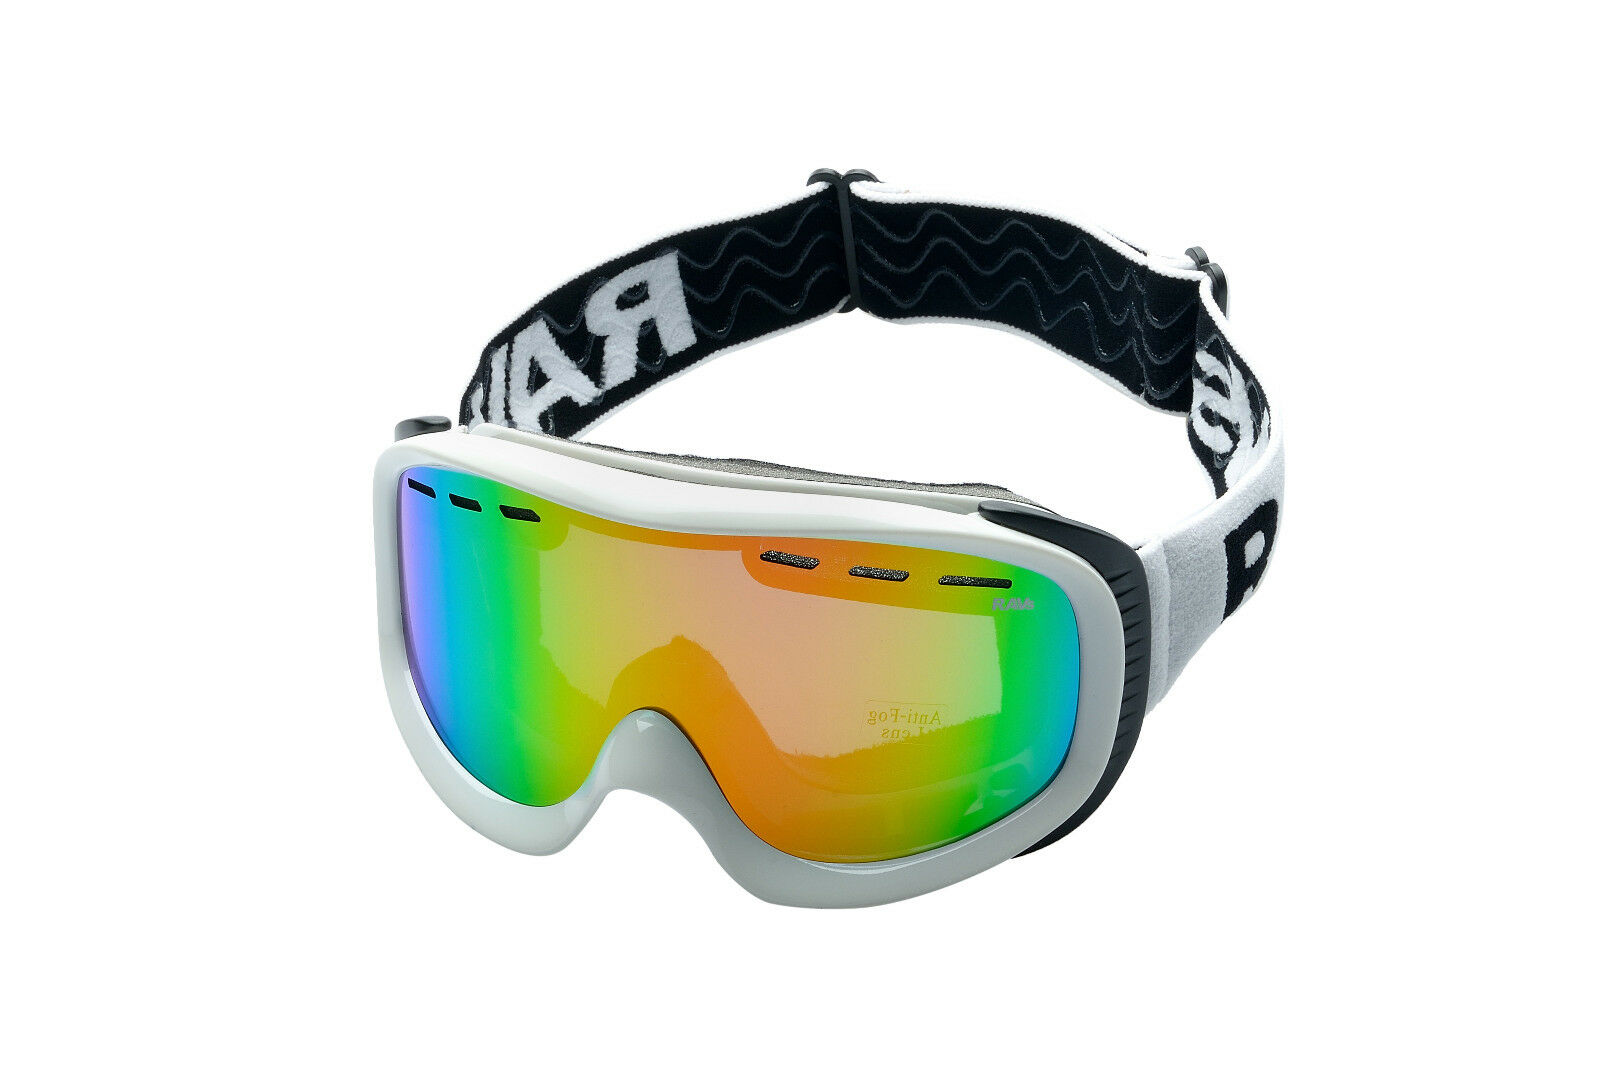 Ravs Unisex Ski Goggles Goggles Skiing Goggles for all Weather Antifog